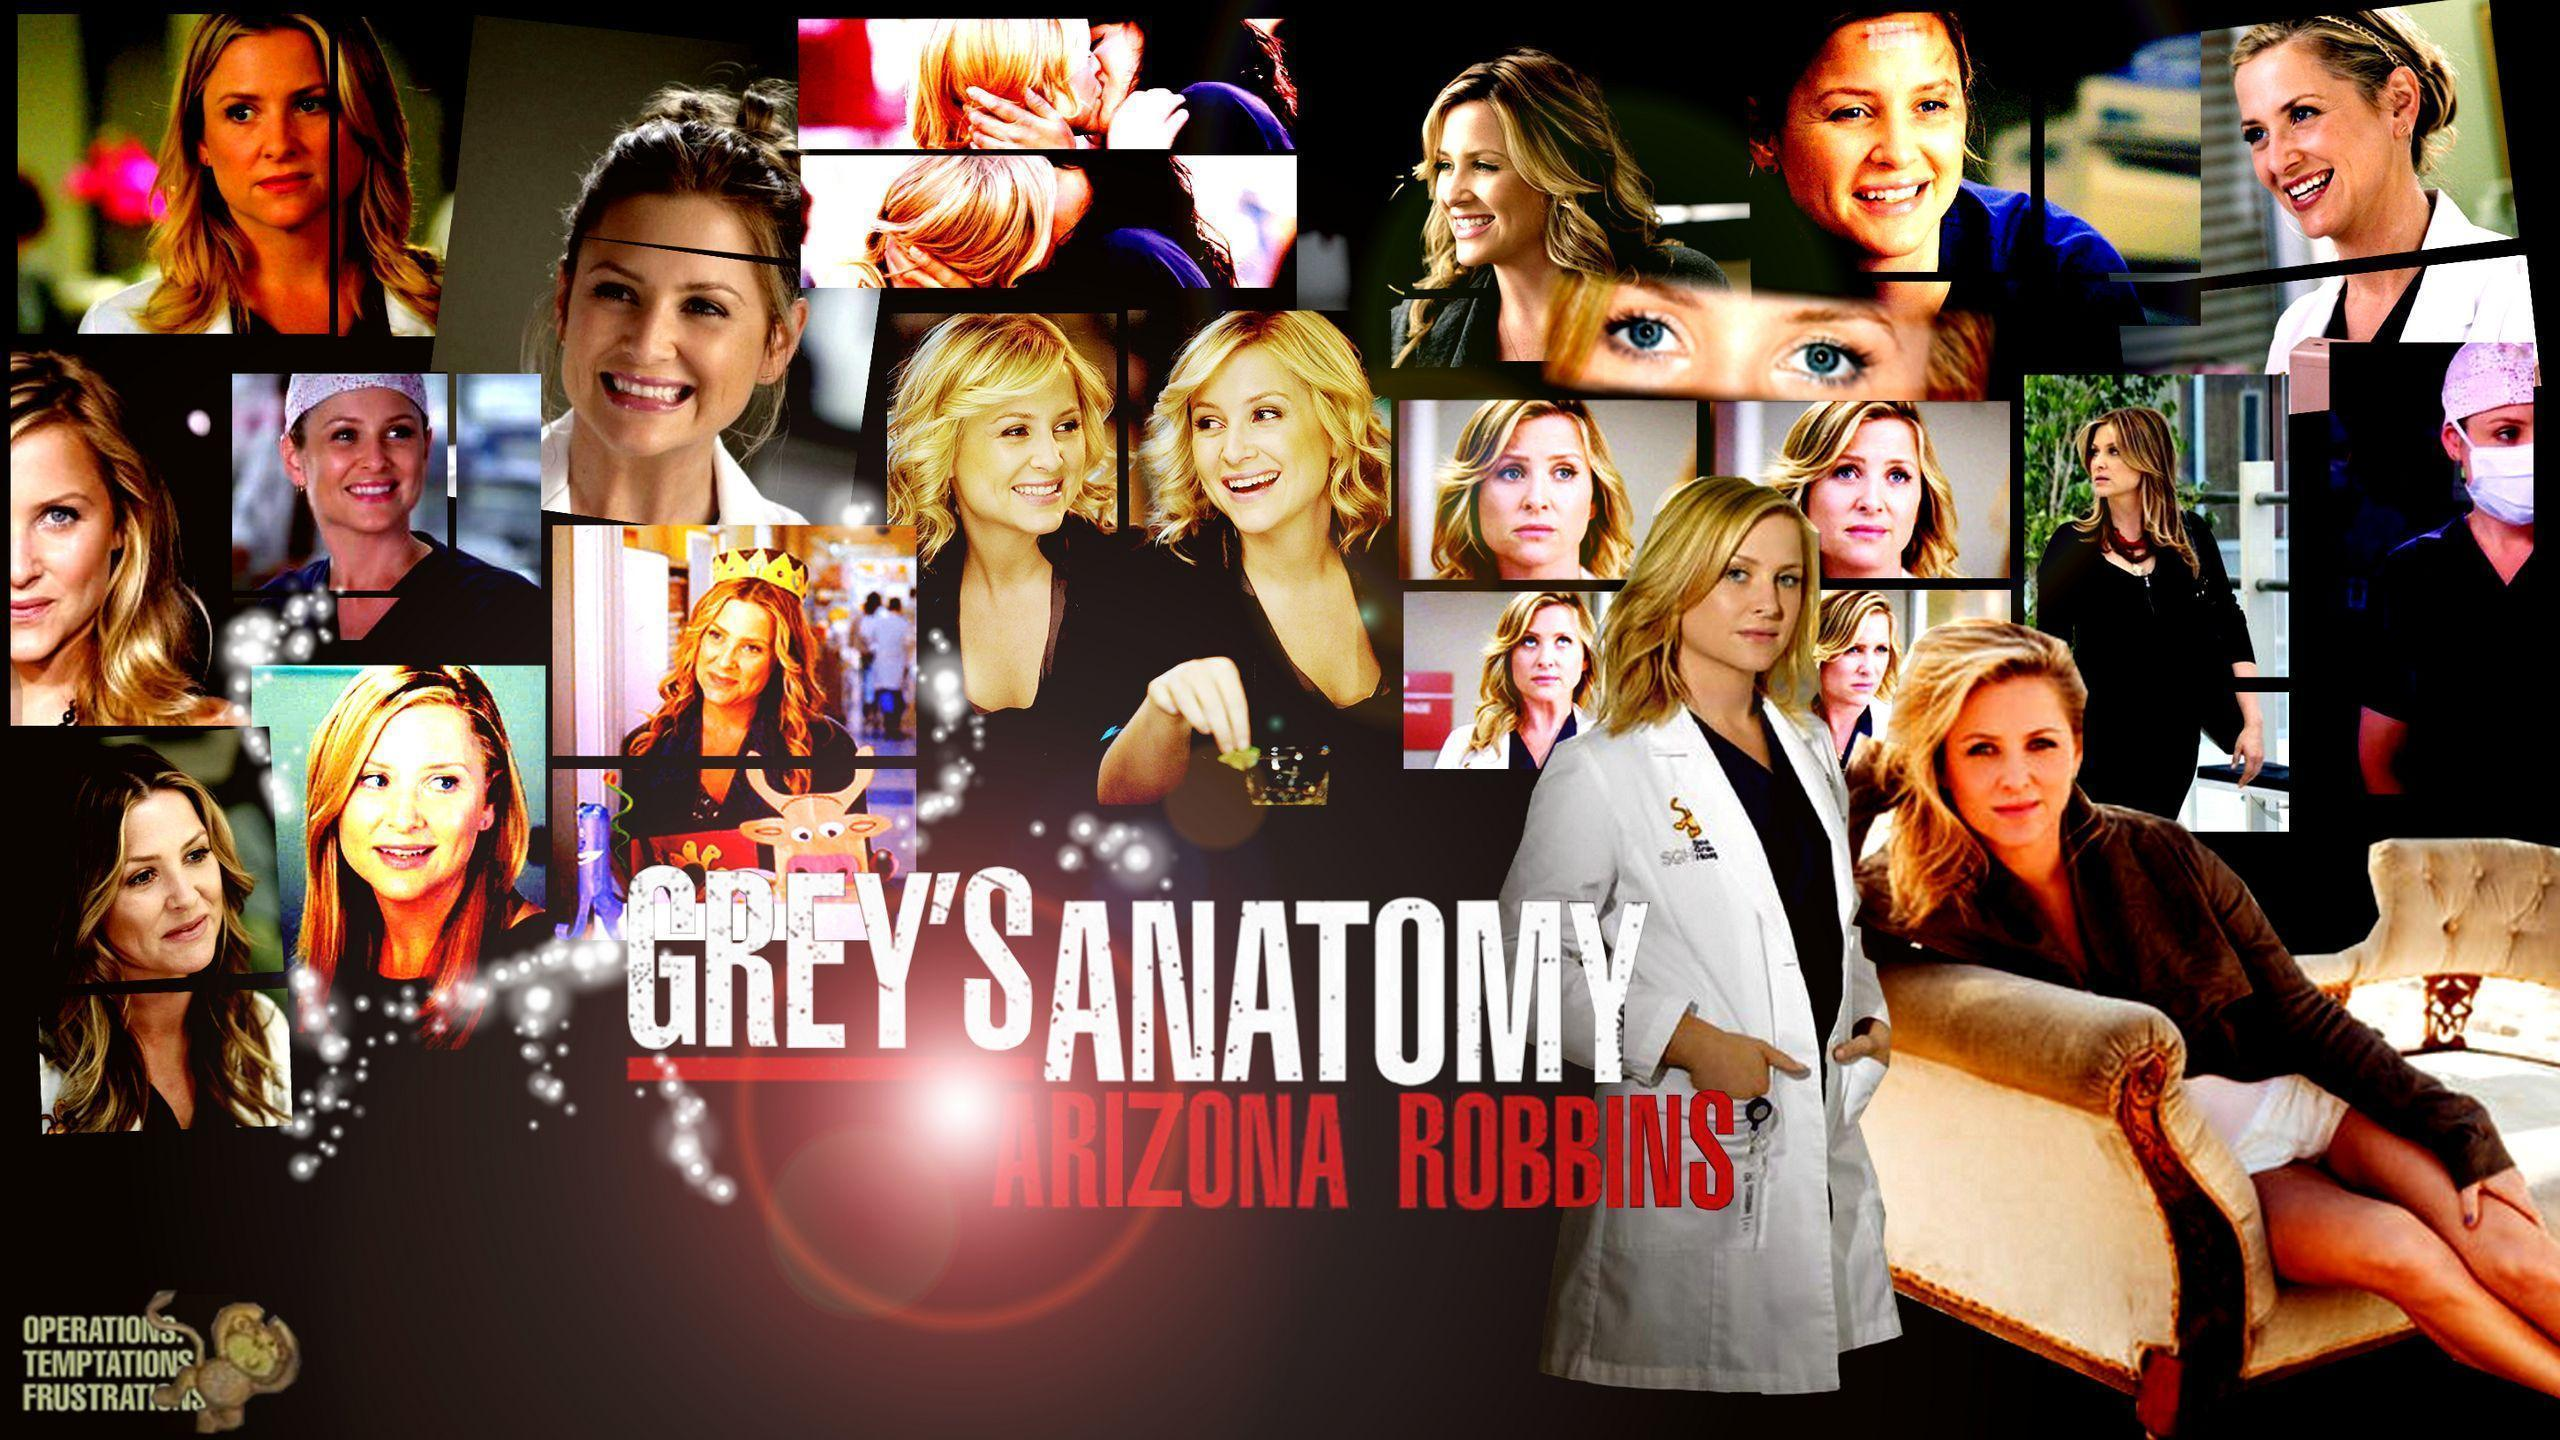 17 Best images about Grey's Anatomy on Pinterest | Seasons, TVs ...